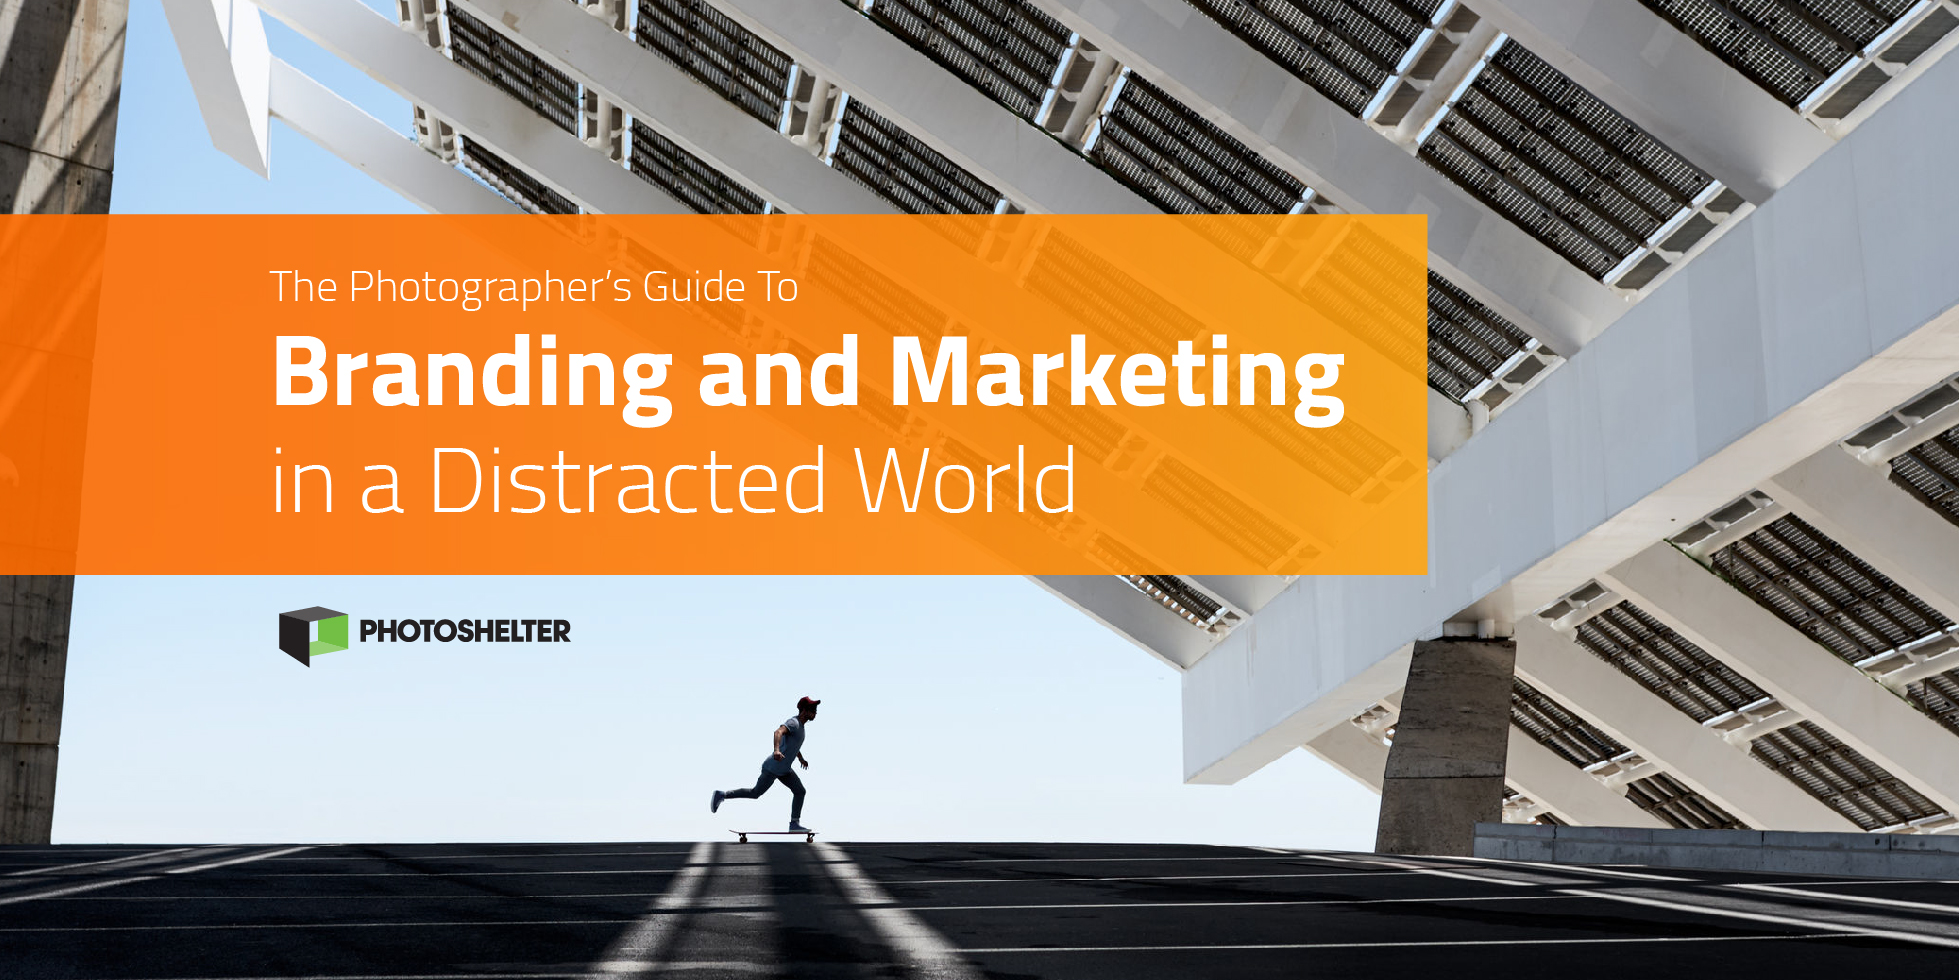 TThe Photographer's Guide to Branding and Marketing in a Distracted World